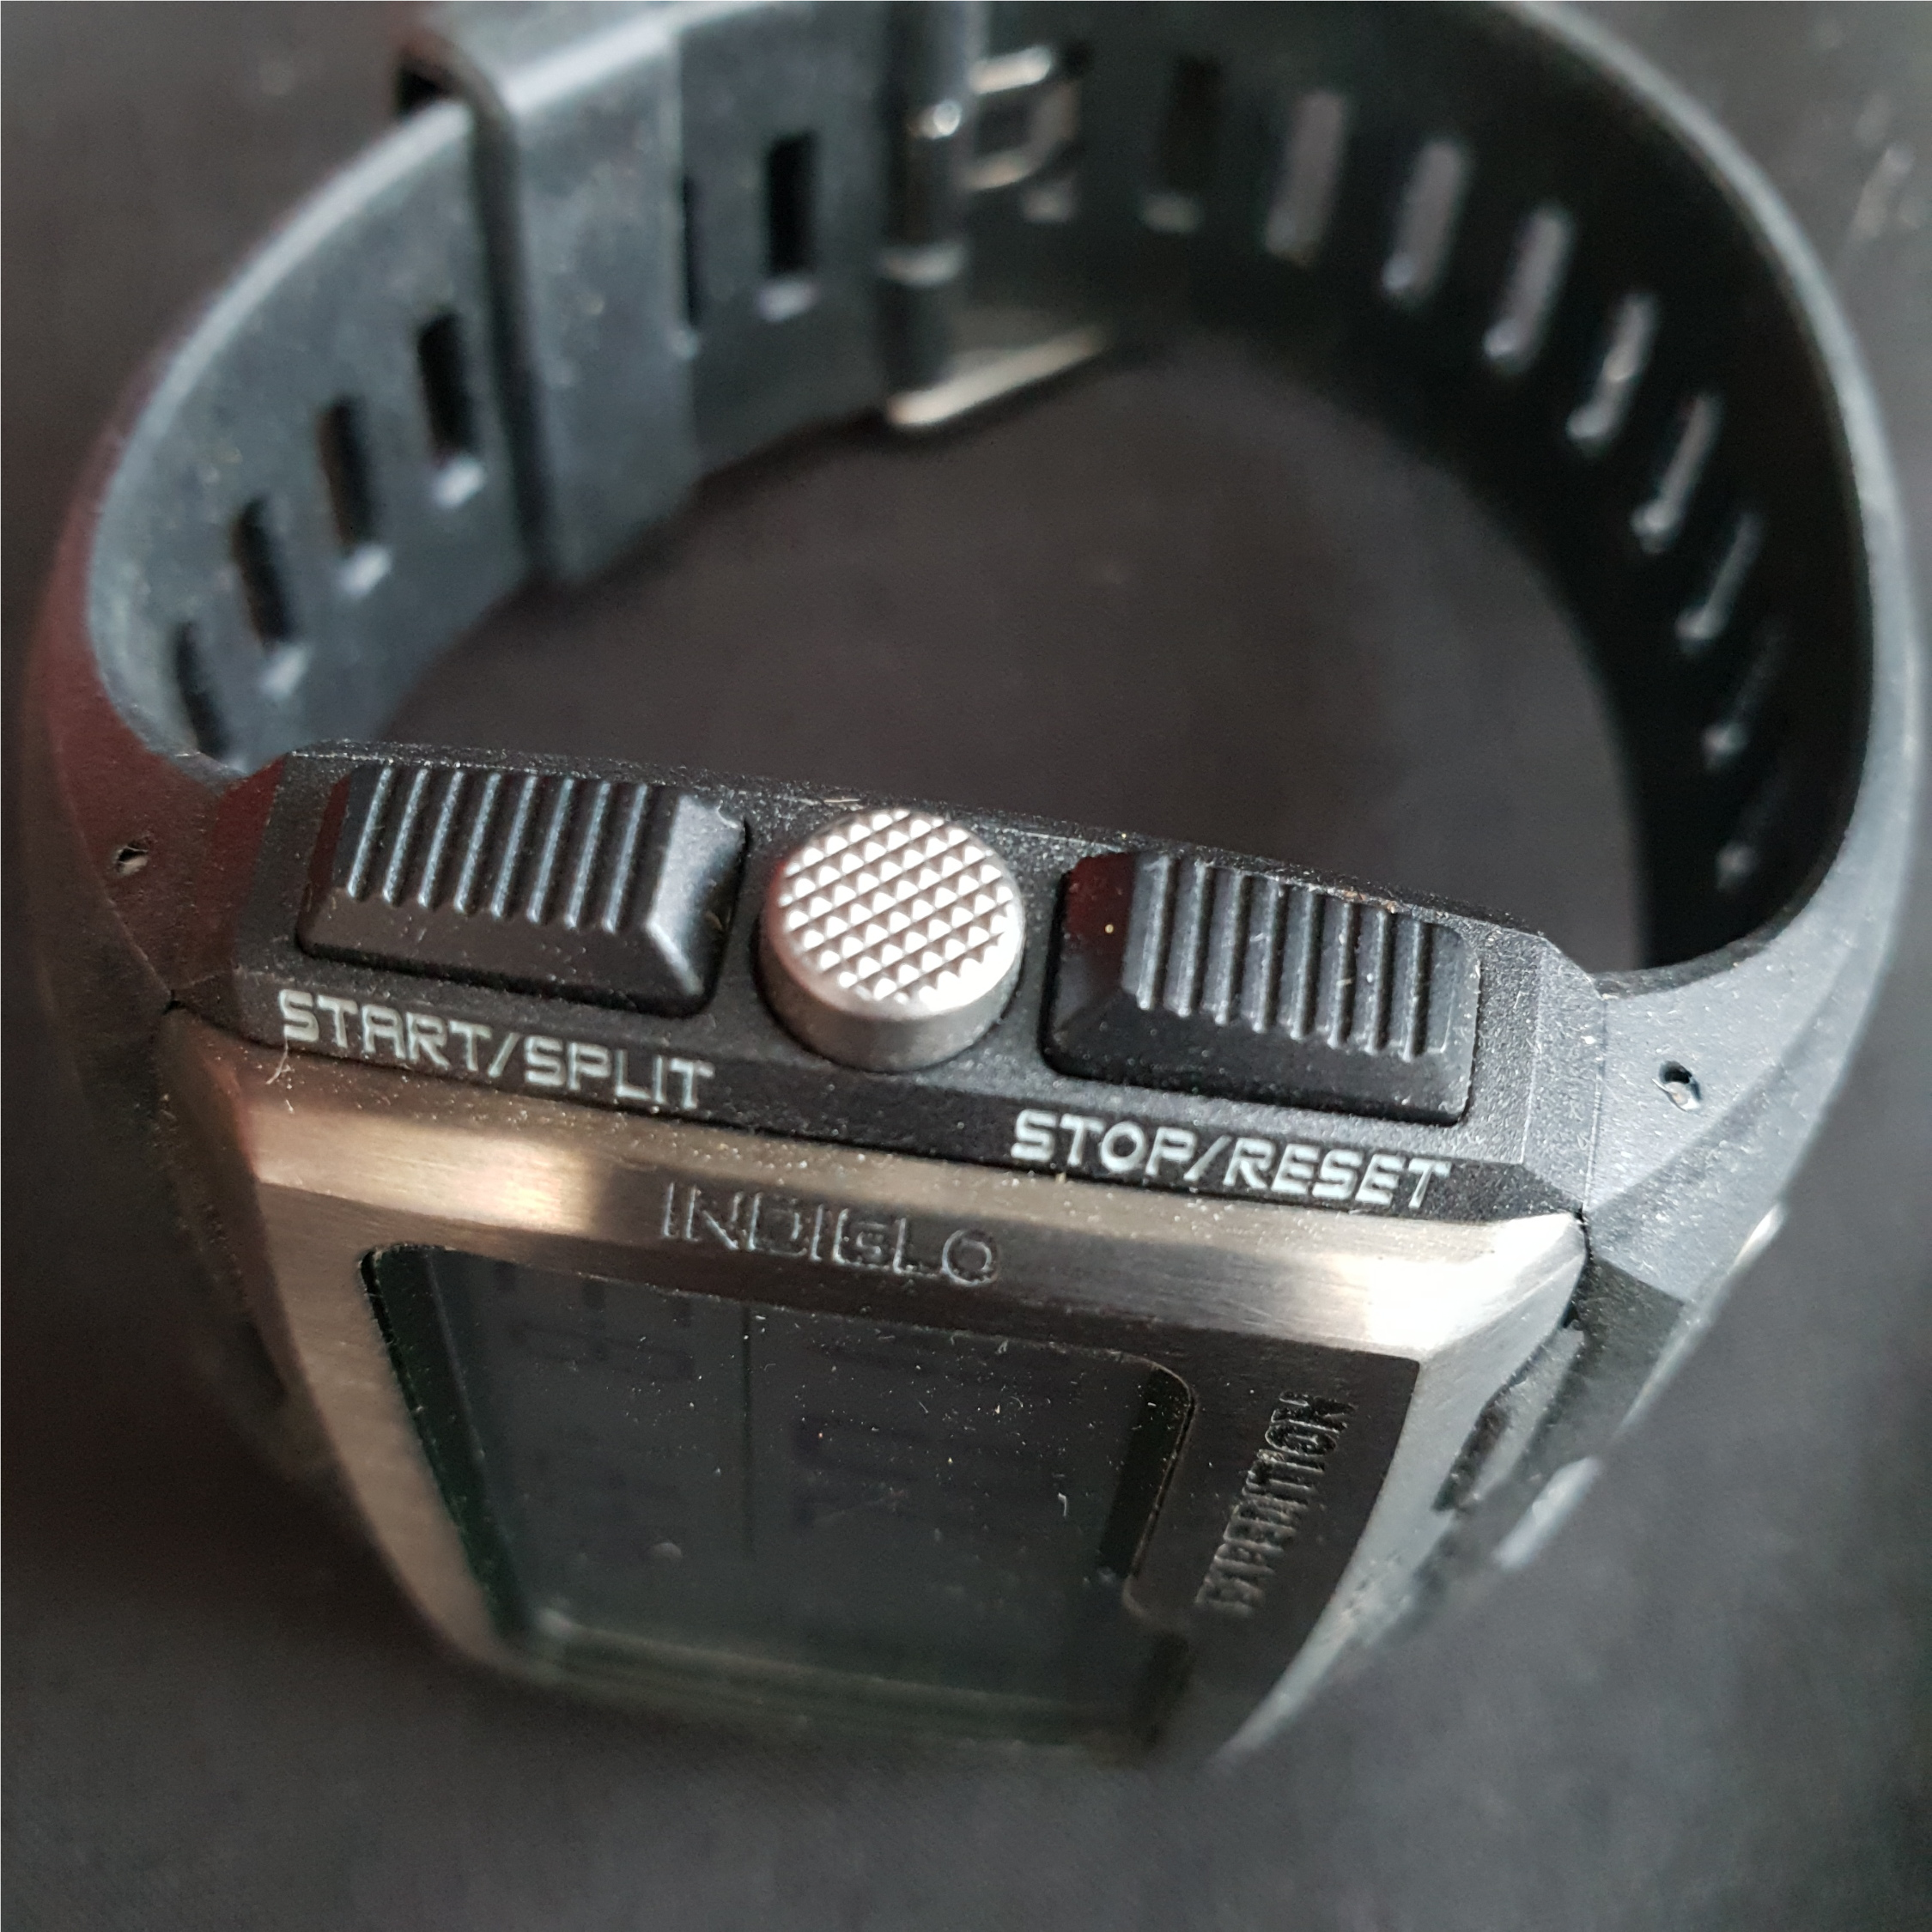 Collectable Timex Expedition Wrist Watch TW4B02500 - Image 3 of 4